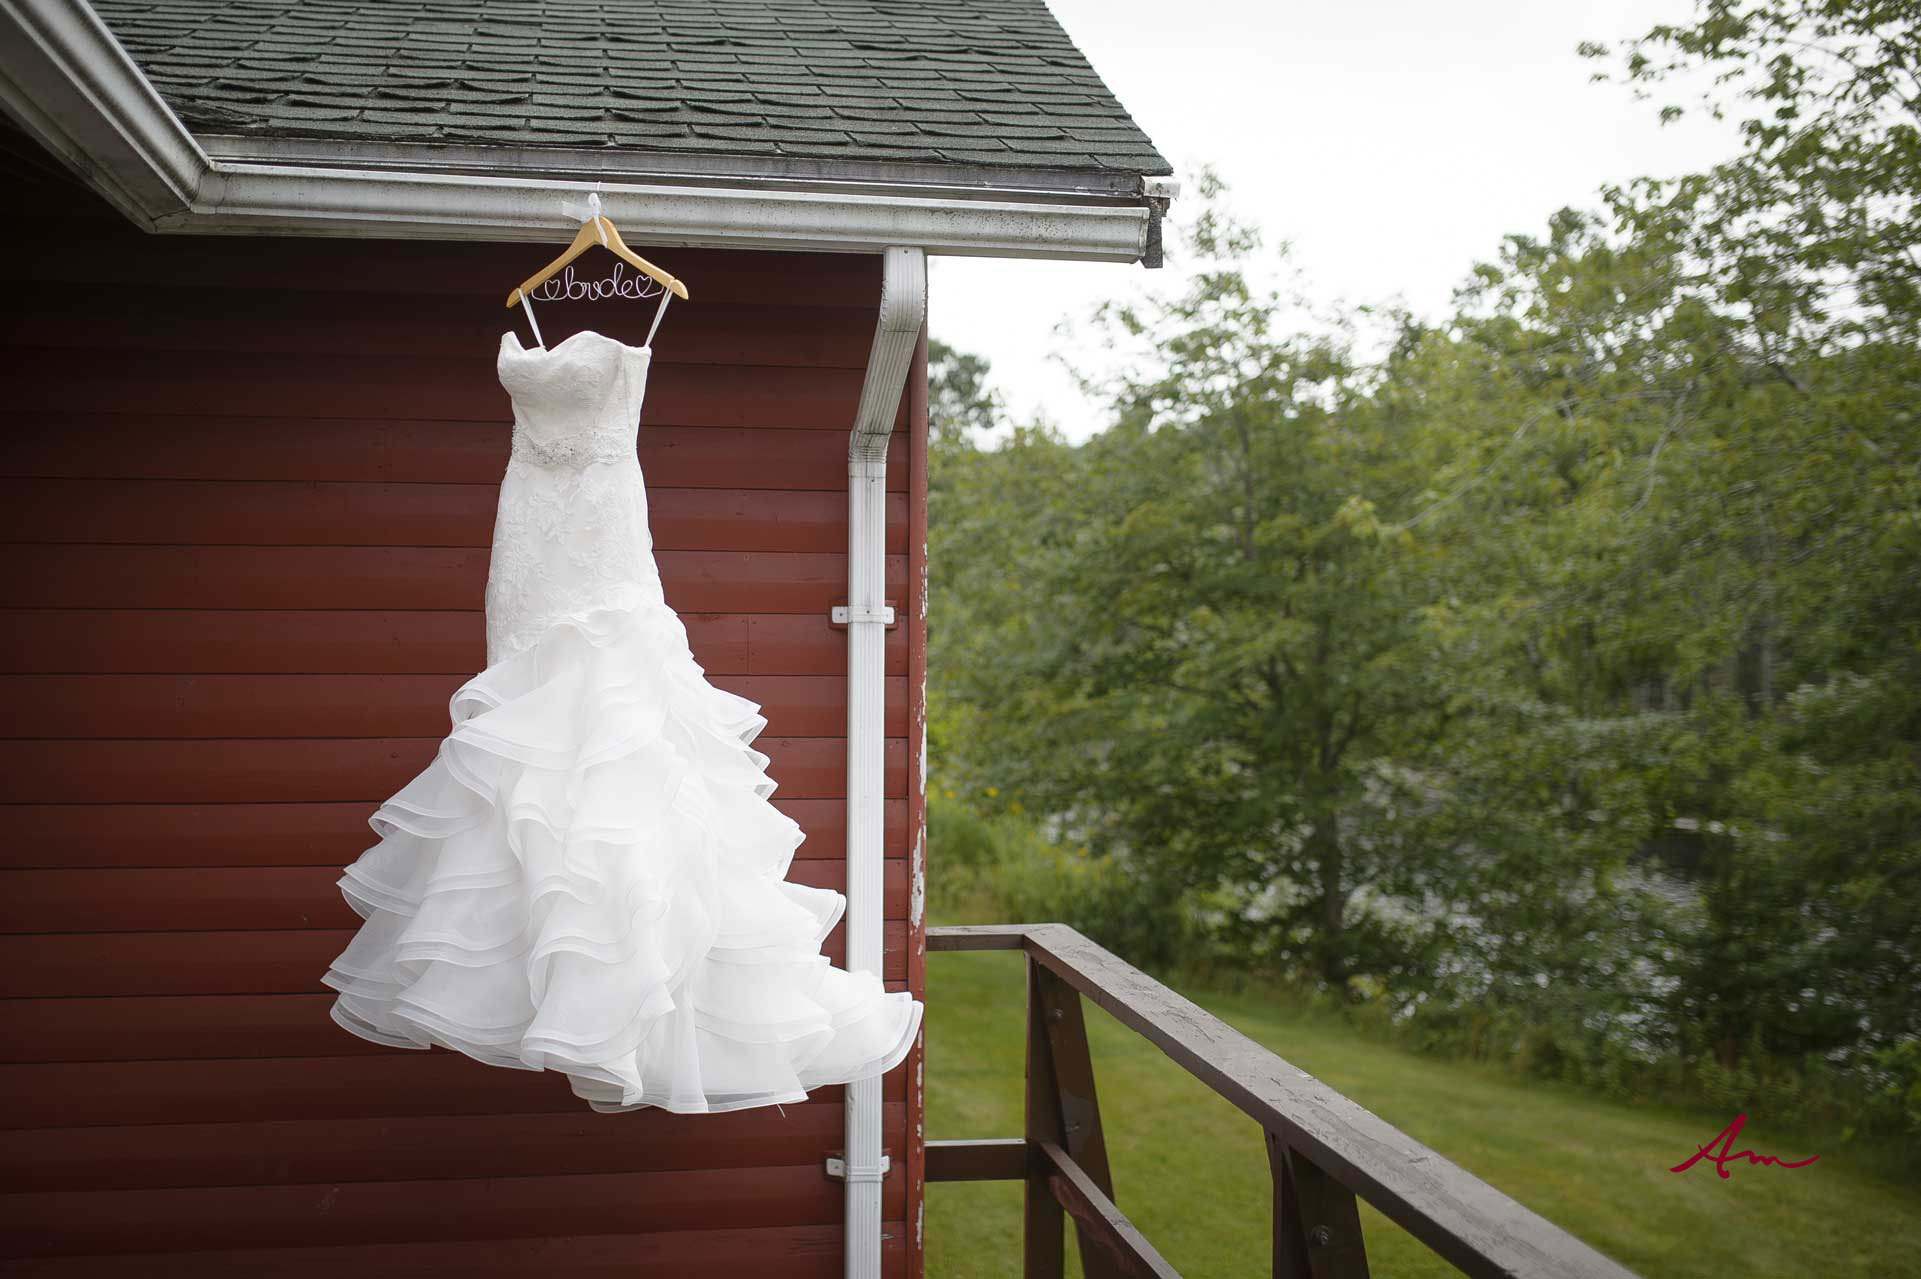 Liscombe-wedding-dress-outside.jpg